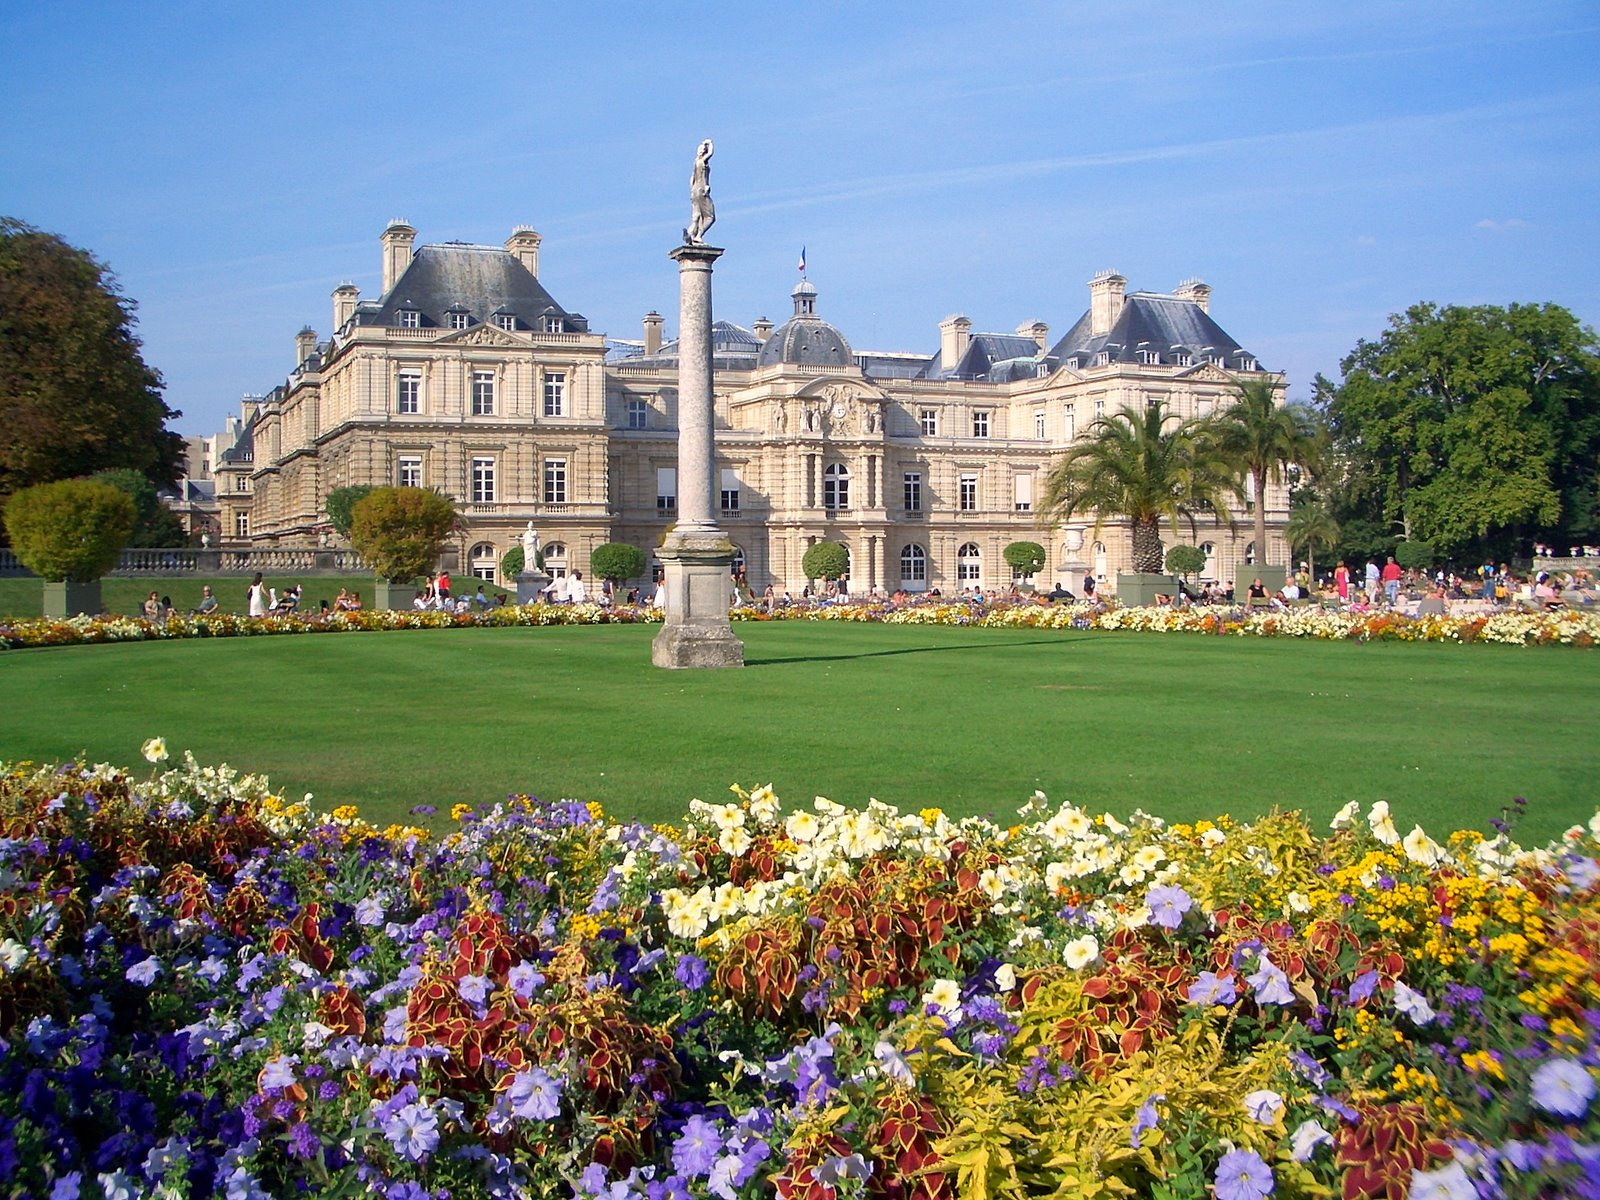 Image gallery jardinduluxembourg for Jardin du luxembourg